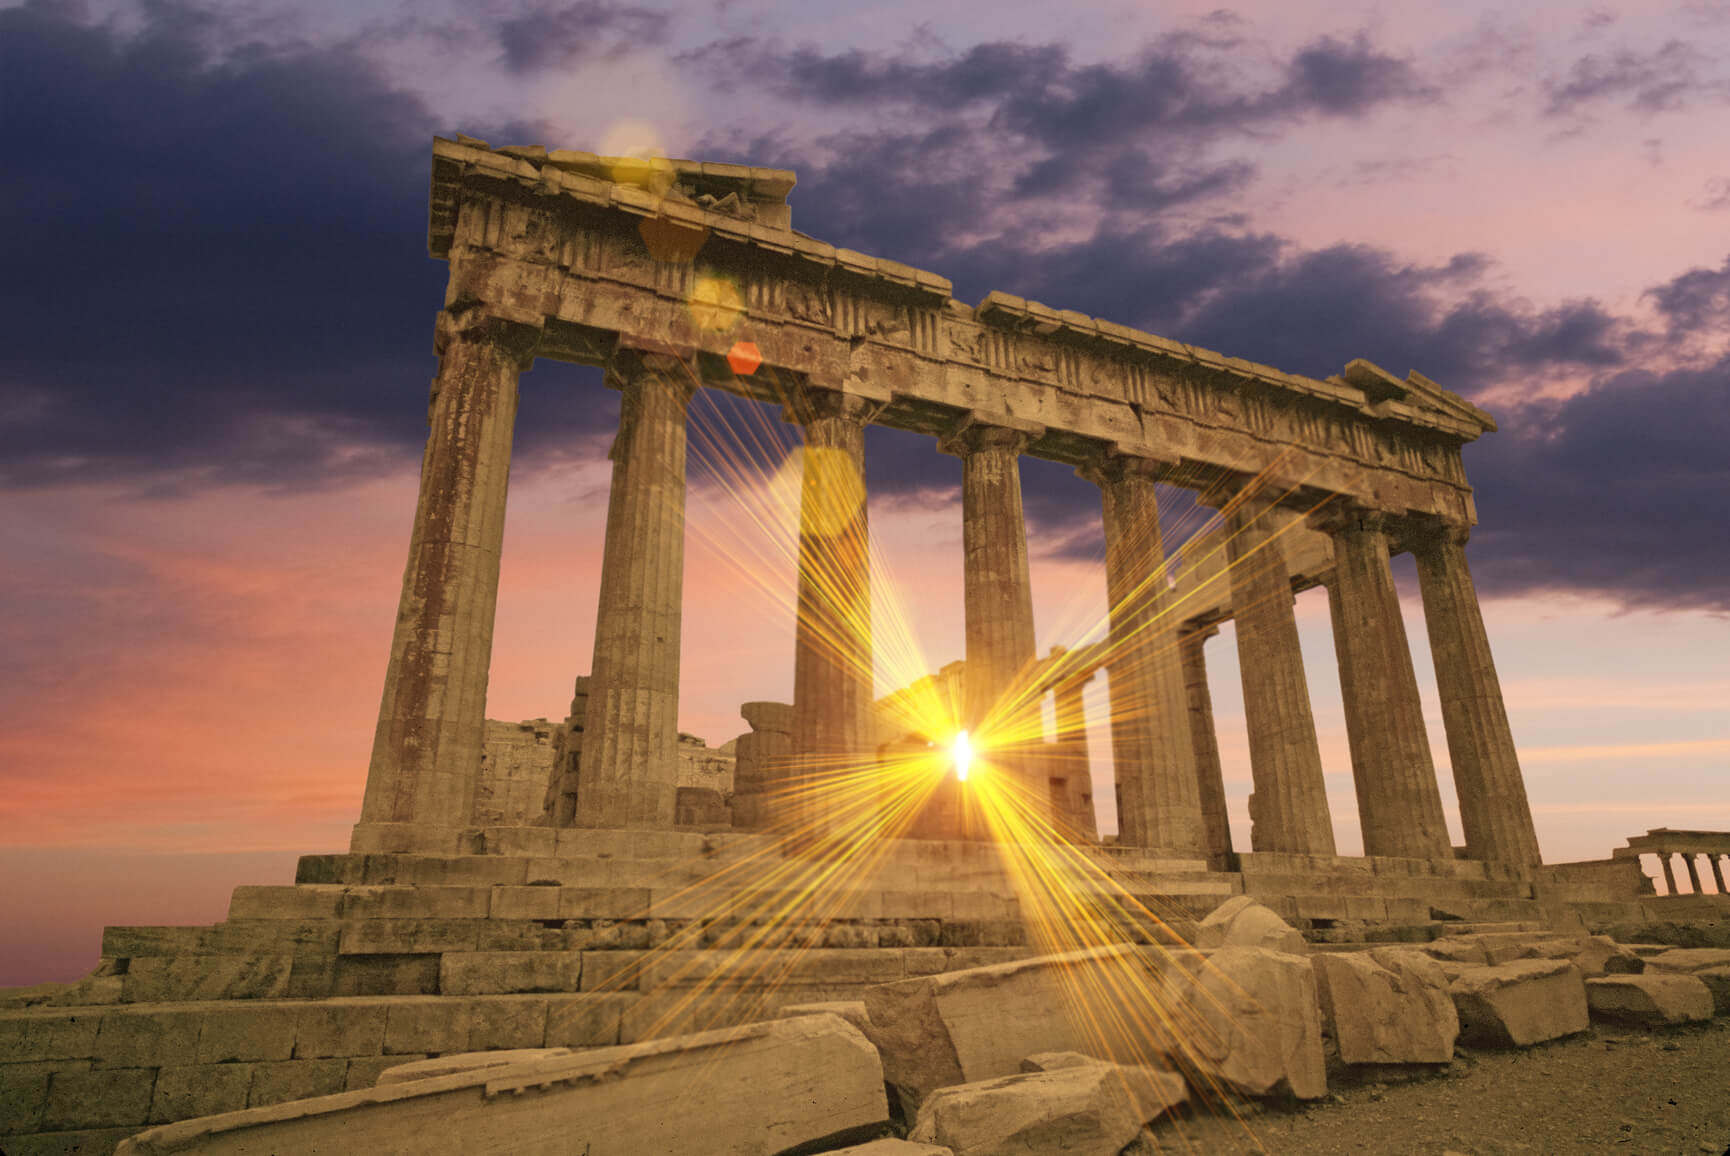 SUMMER: Non-stop from Cairo, Egypt to Athens, Greece for only $221 USD roundtrip (Jan-Jul dates)